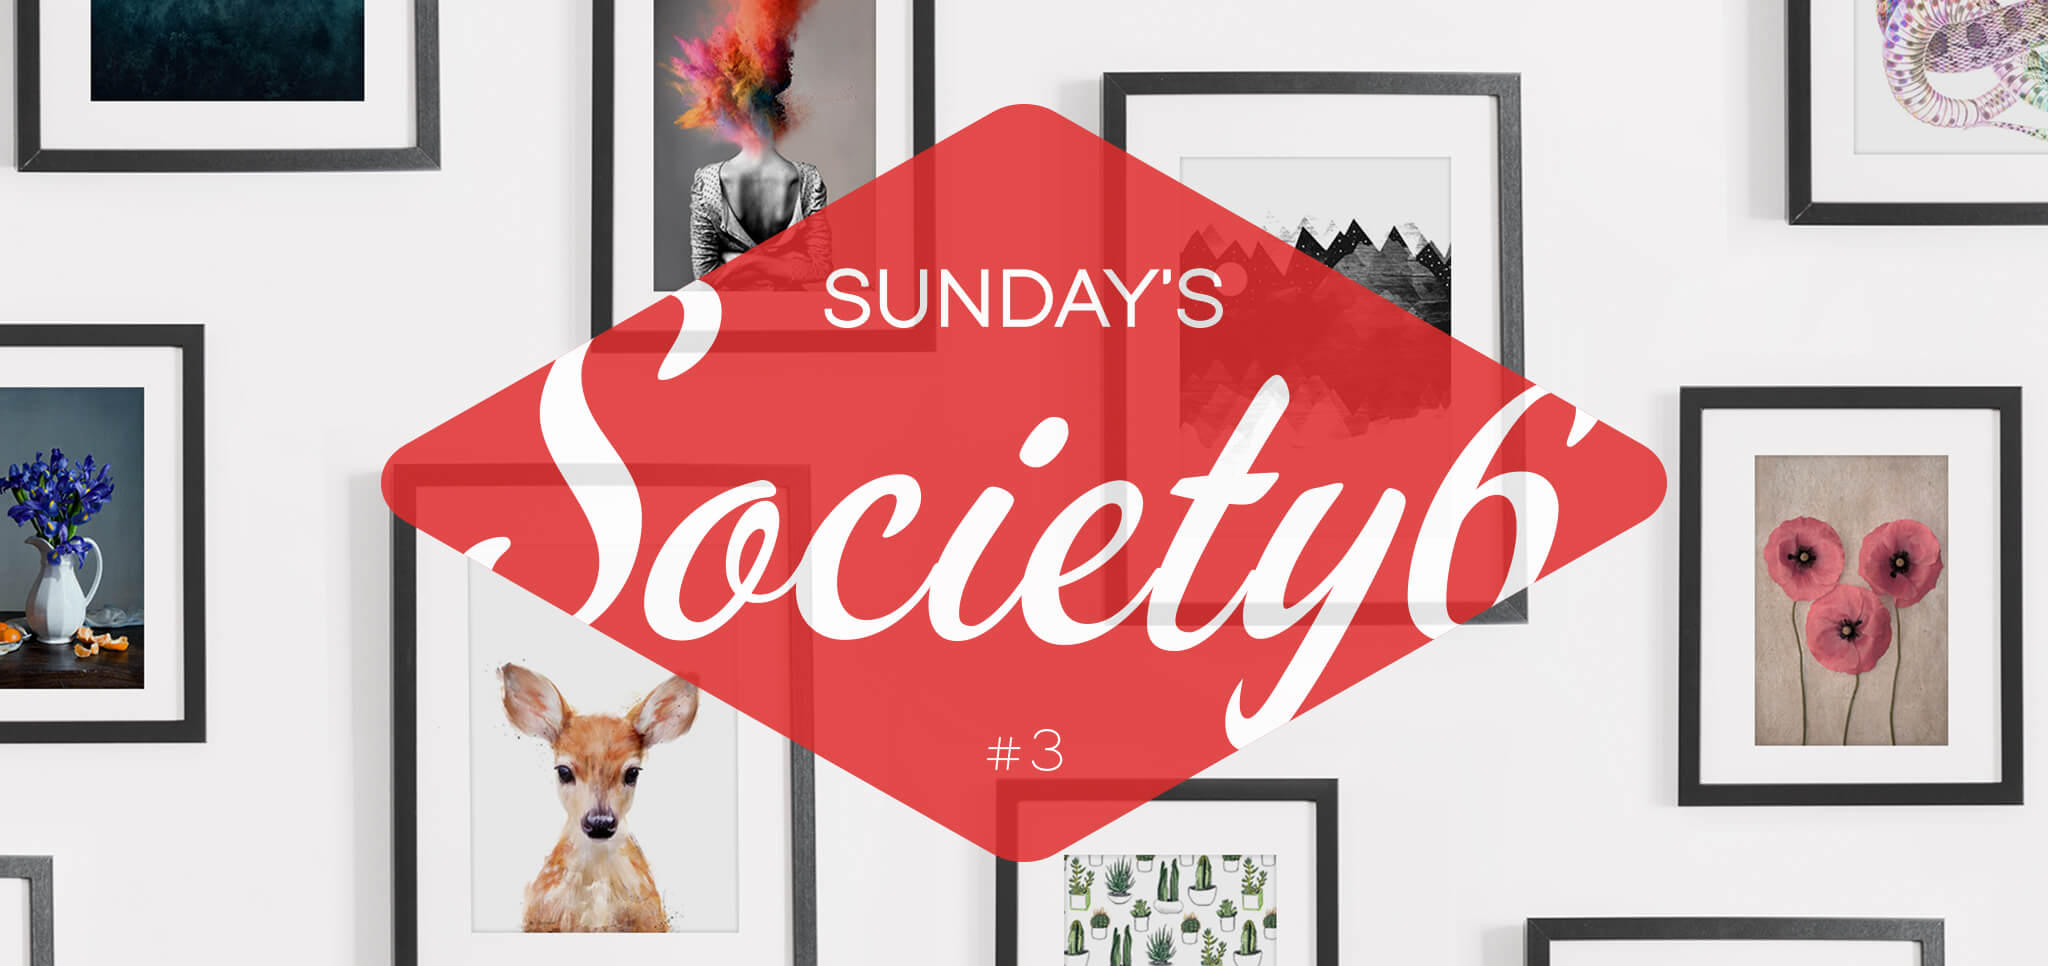 Sunday's Society6 #3 header